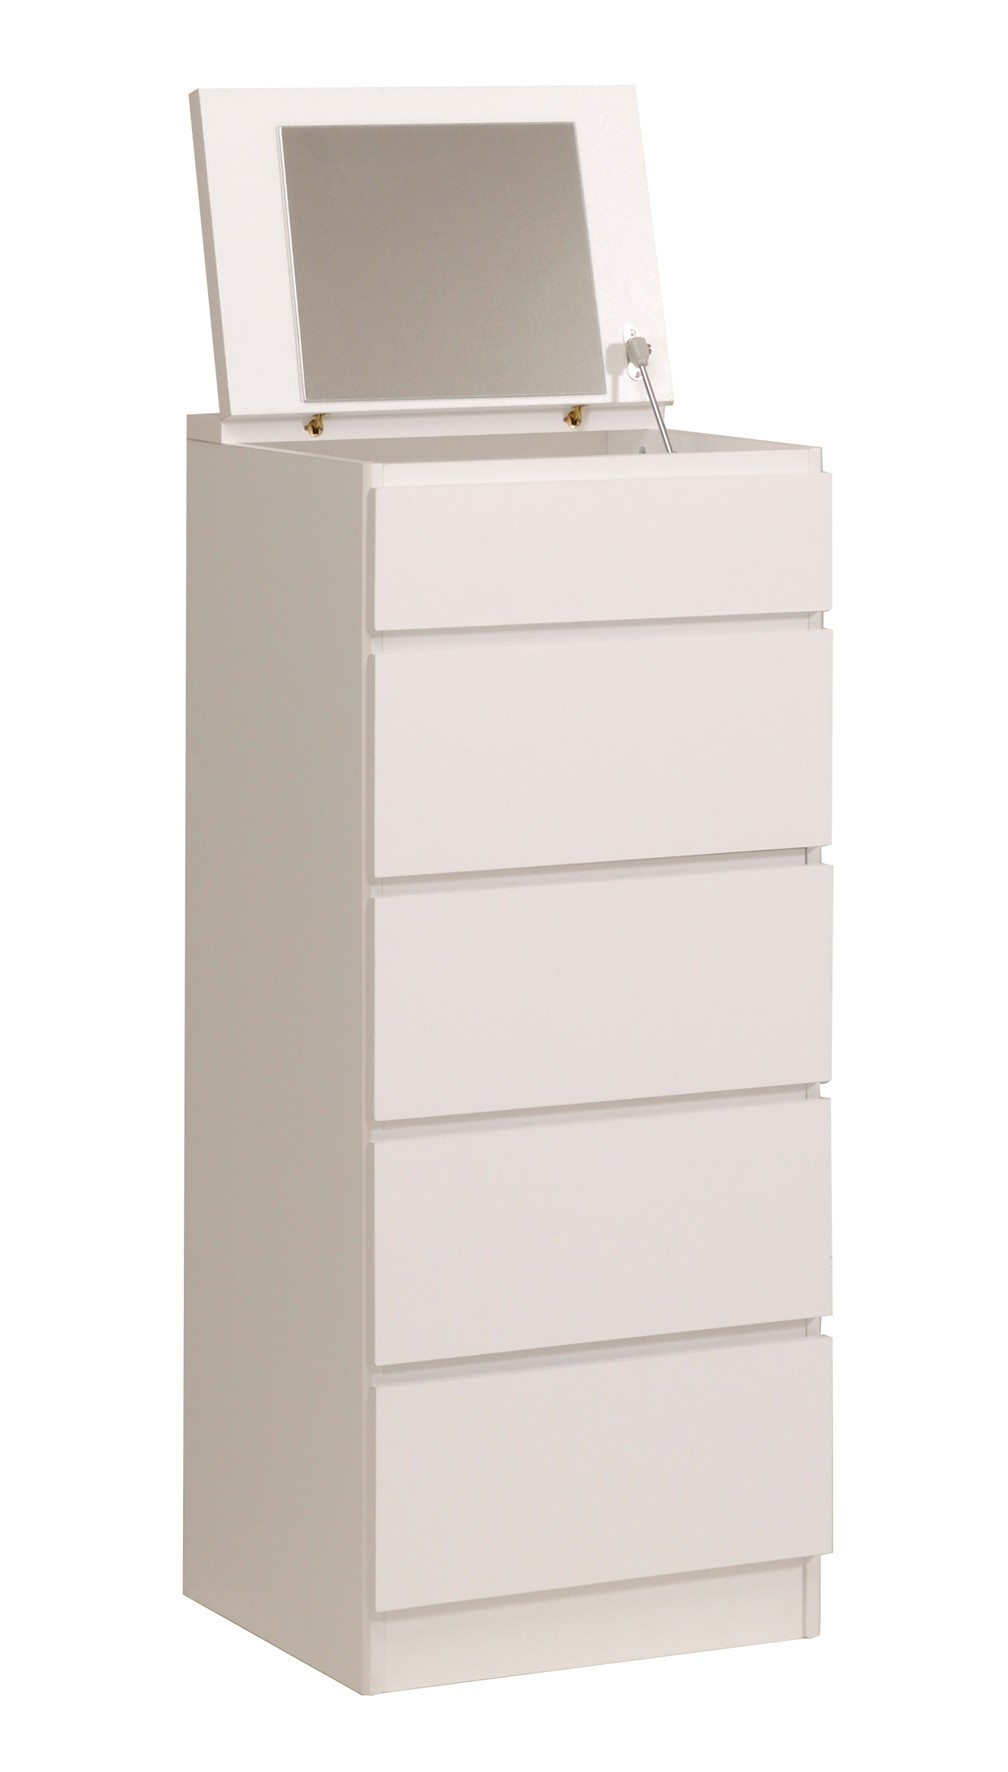 chiffonnier 5 tiroirs blanc id es de d coration int rieure french decor. Black Bedroom Furniture Sets. Home Design Ideas